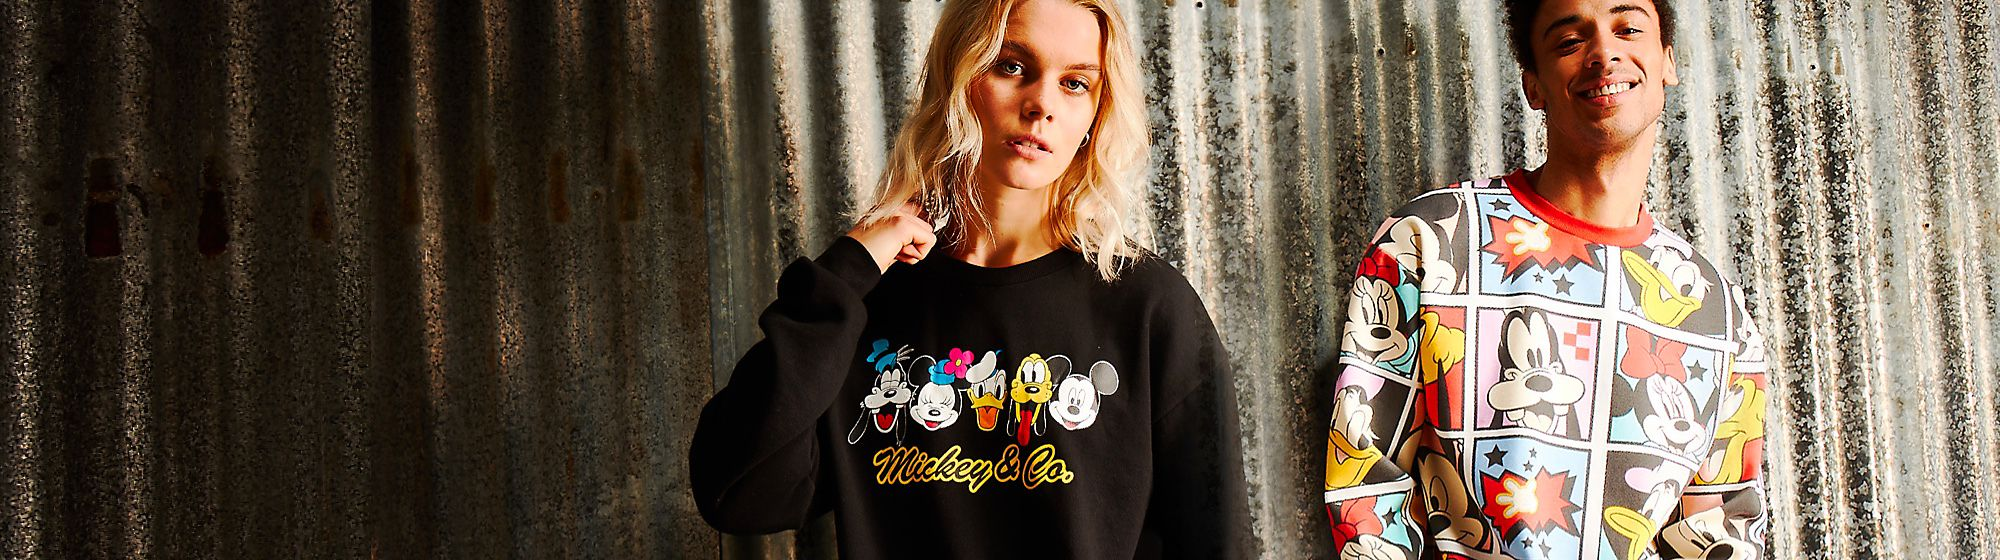 Mickey and Co. A retro Disney apparel brand inspired by 80s and 90s designs, made by using up to 50% of fibers from recycled plastic bottles.